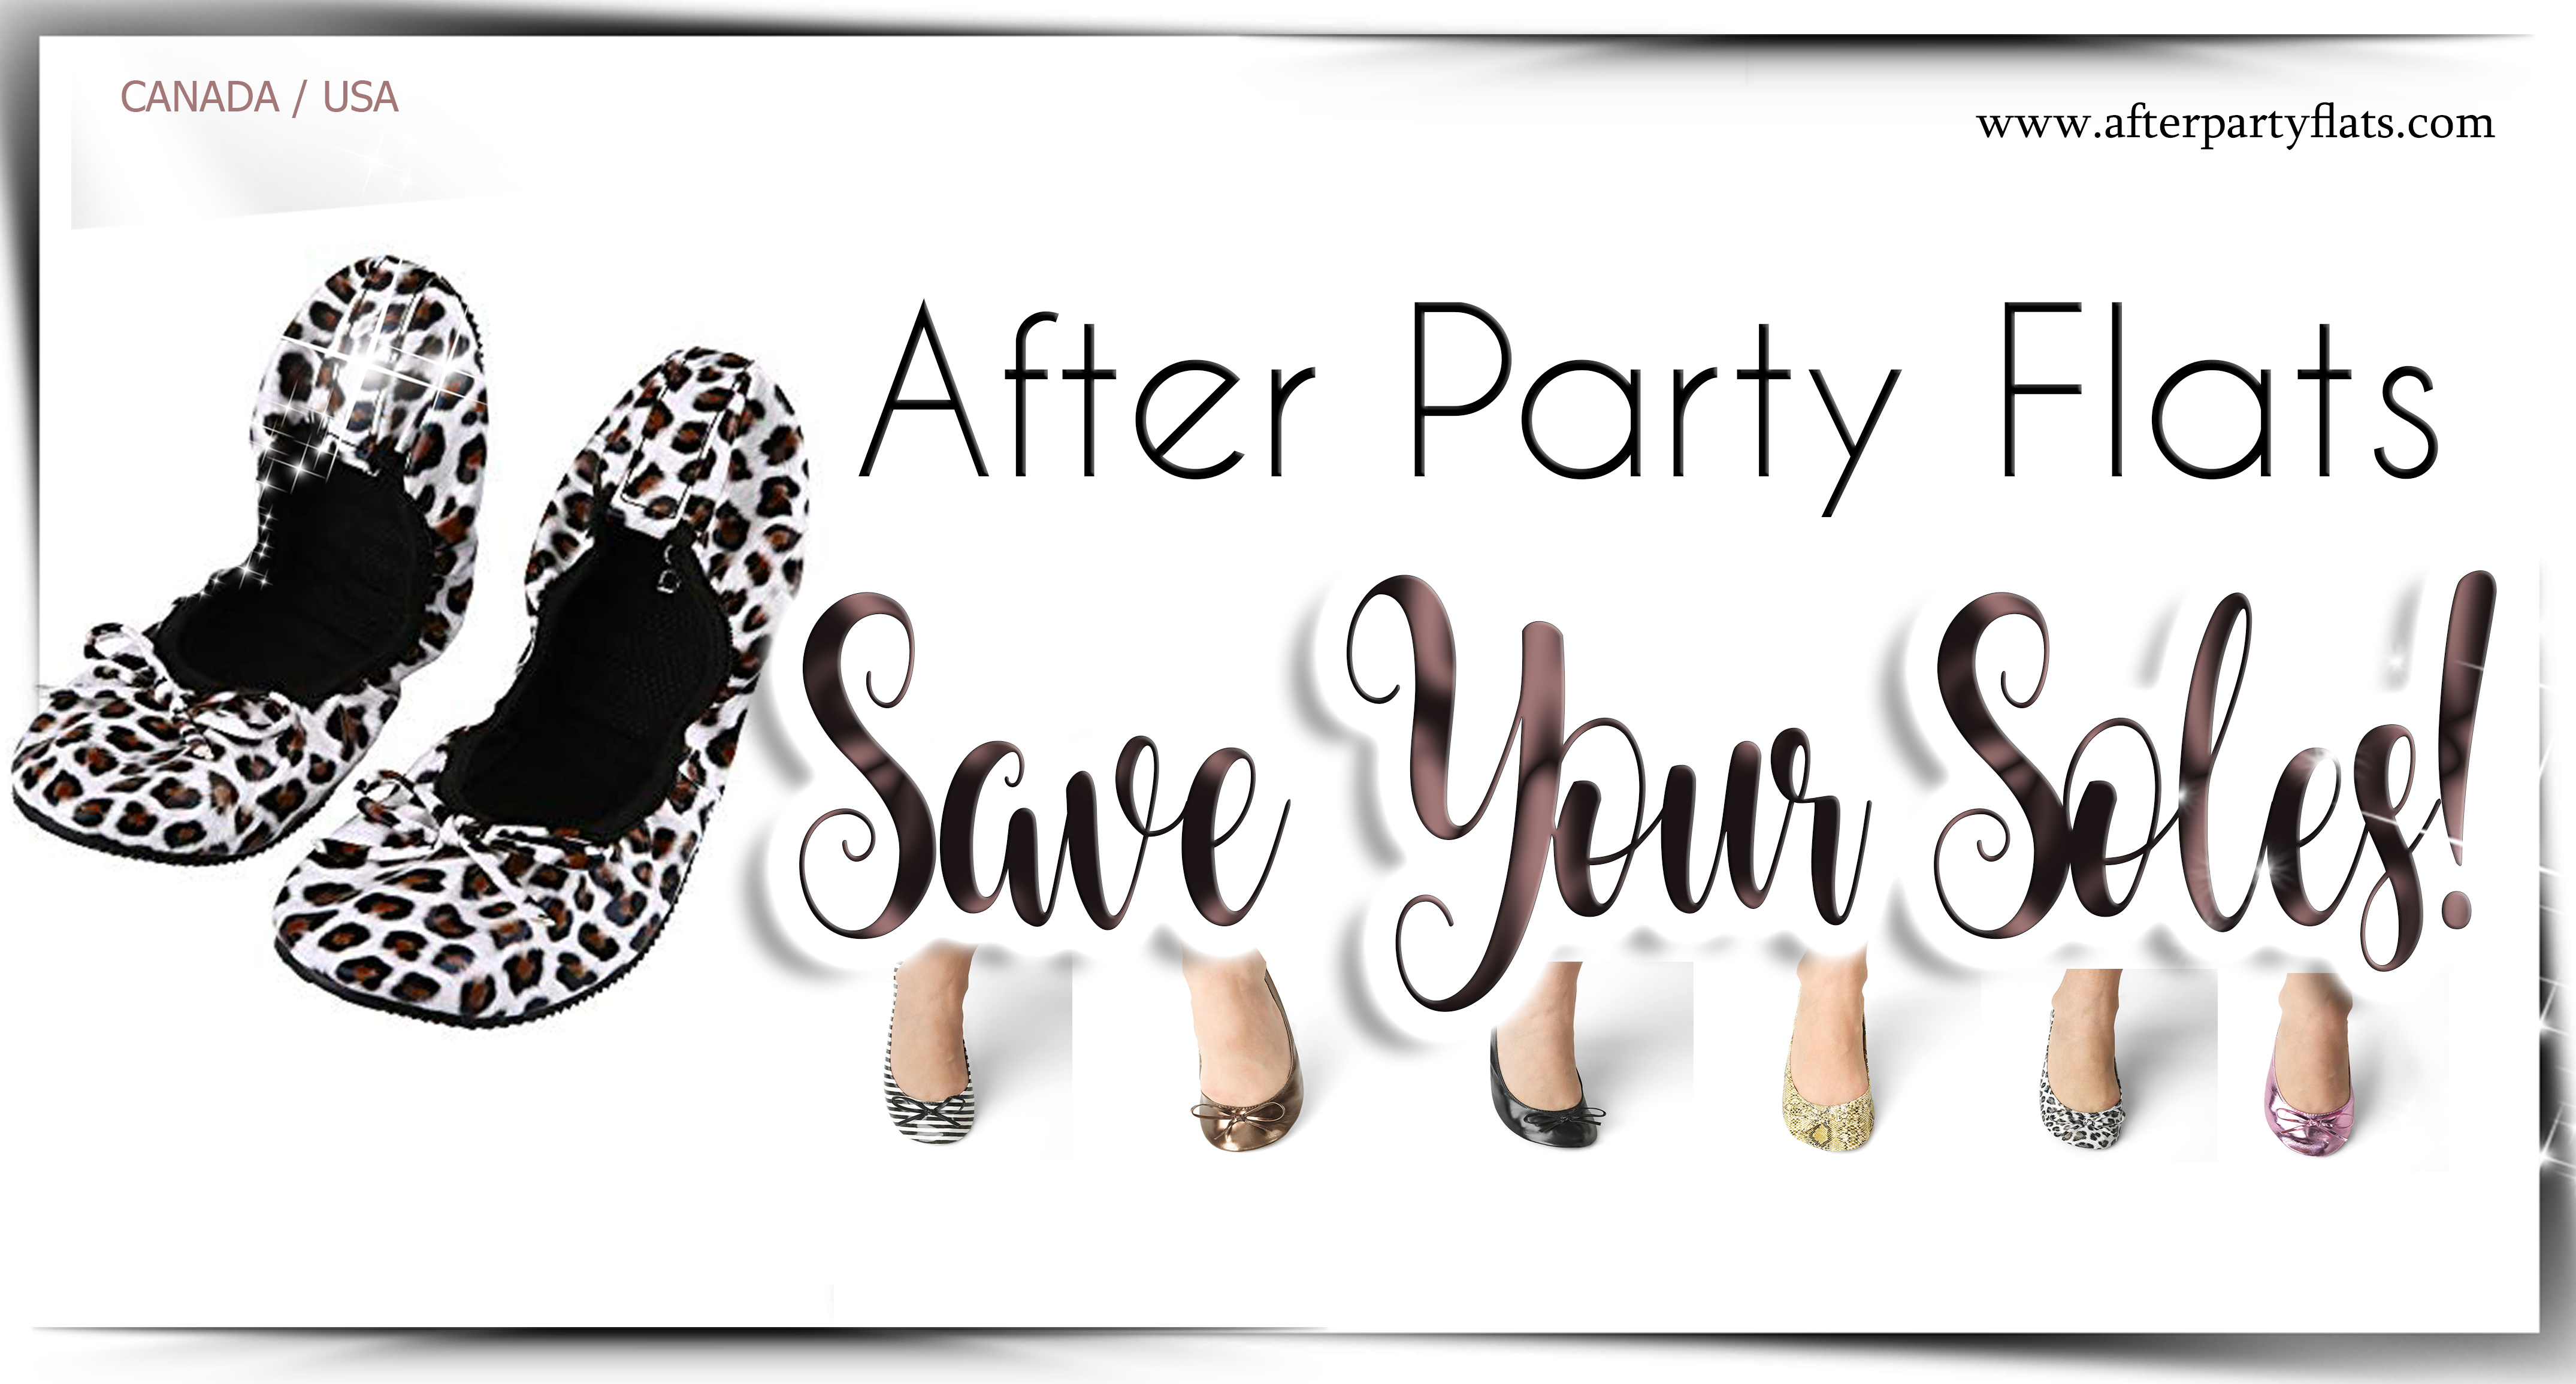 AFTER PARTY FLATS FB COVER PLAIN SHOES 1A